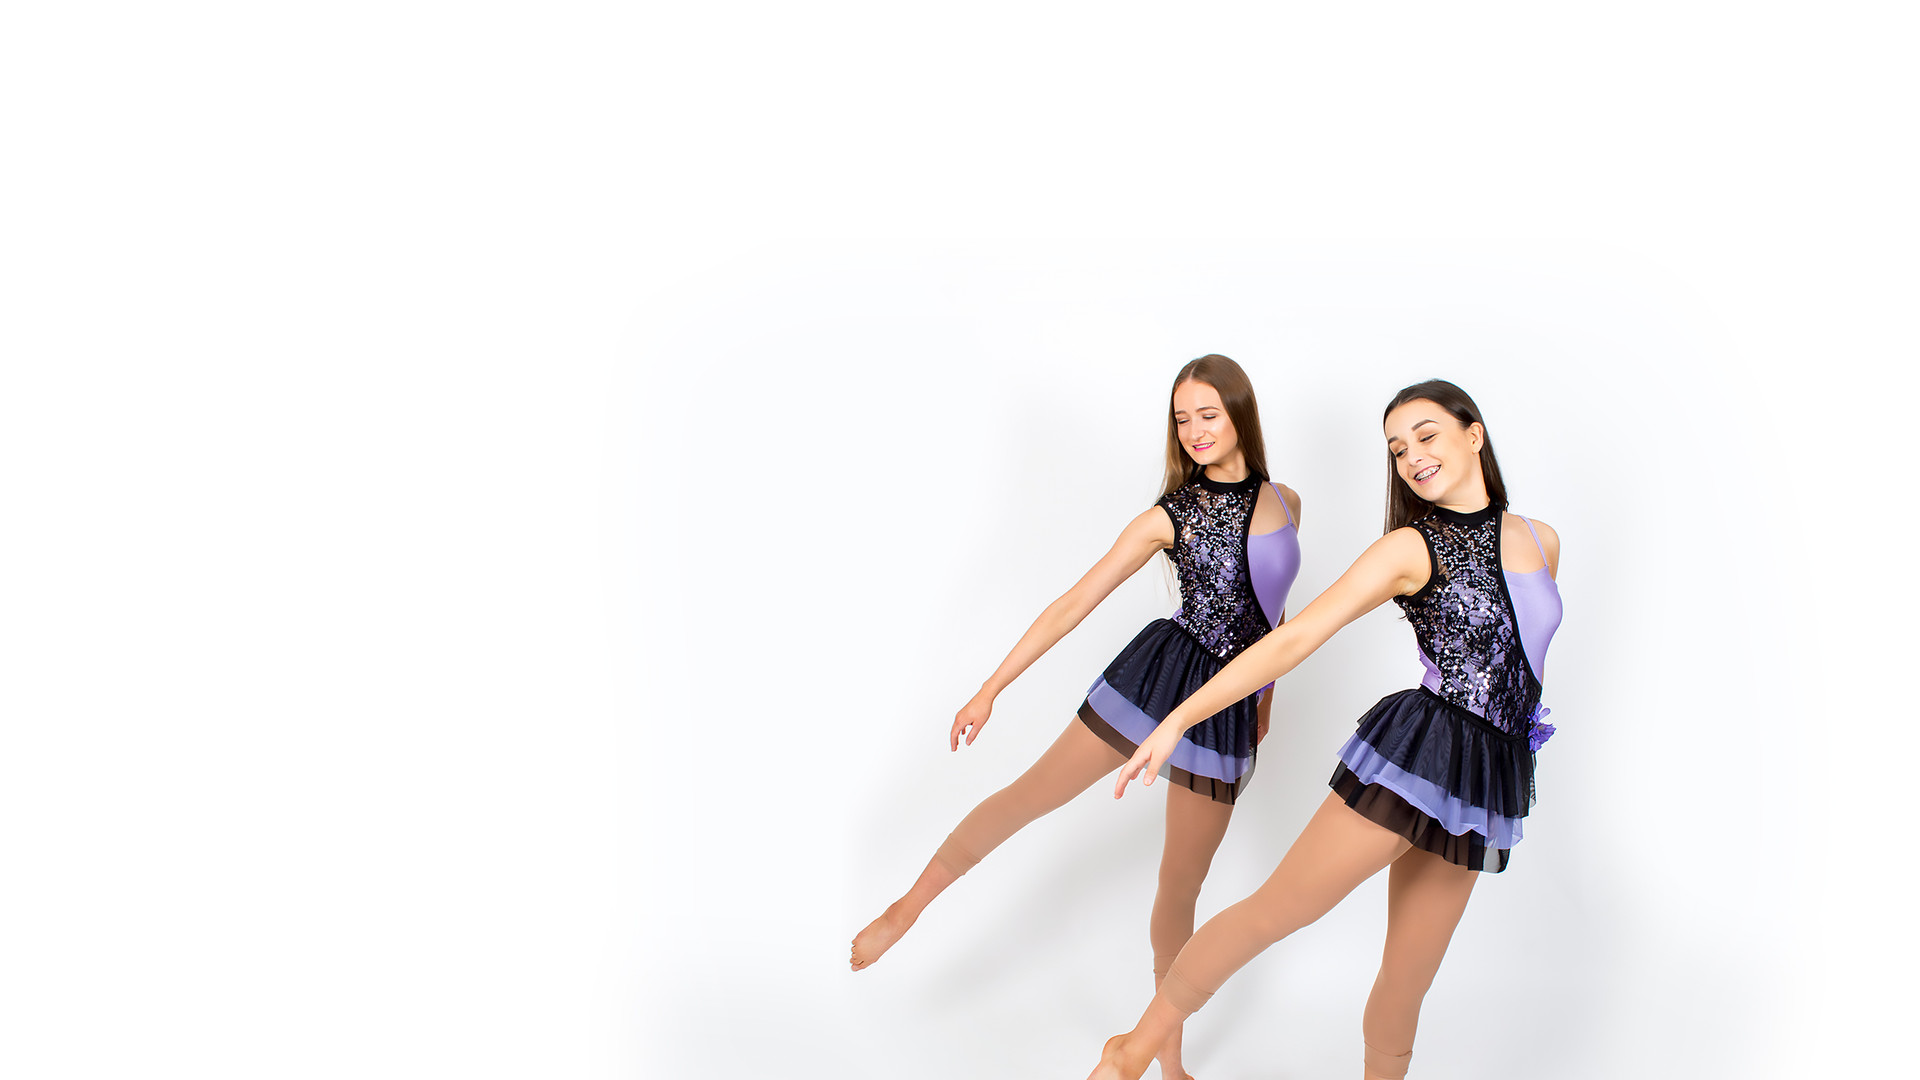 dancewear clothing